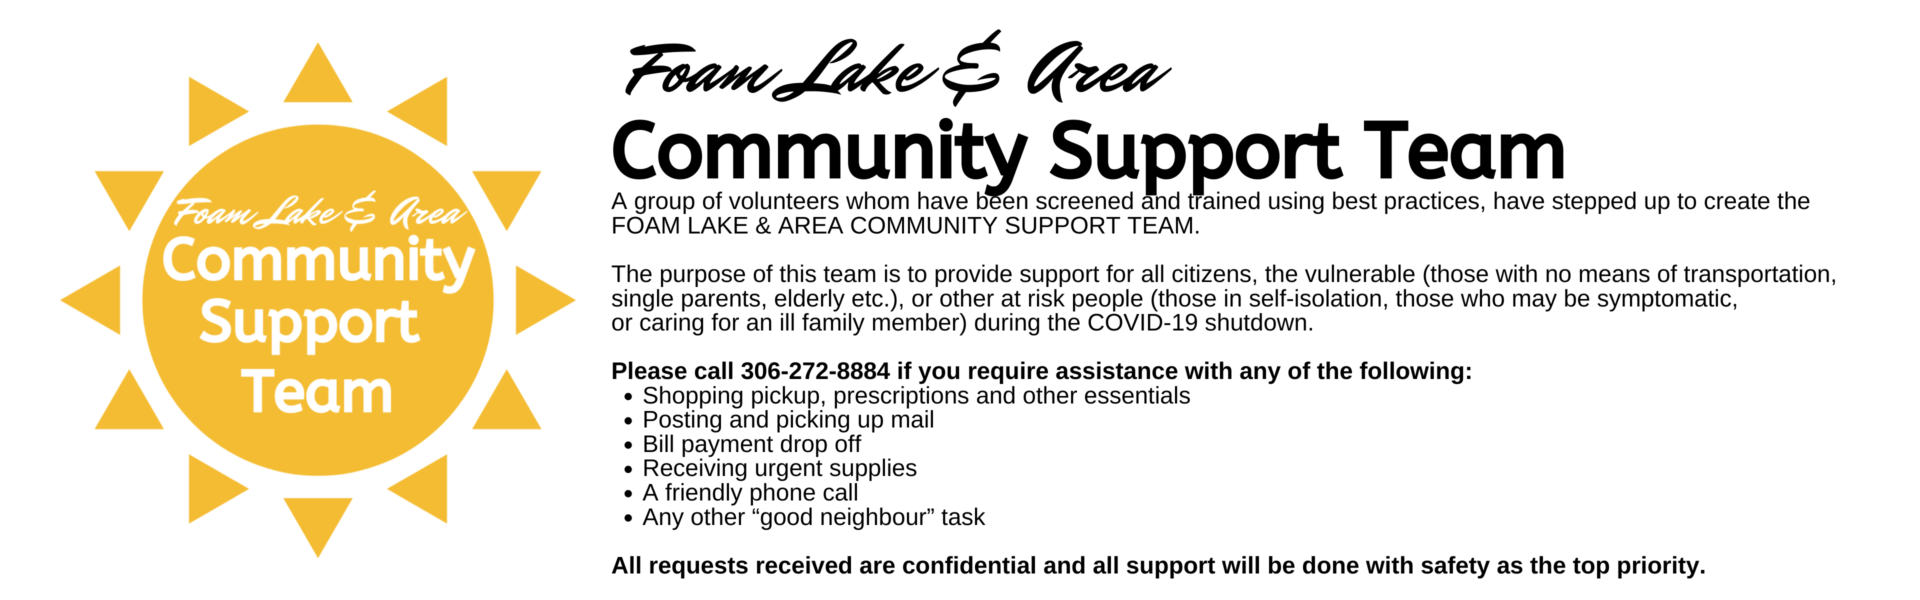 Copy of Copy of Copy of Foam Lake Community Support Team